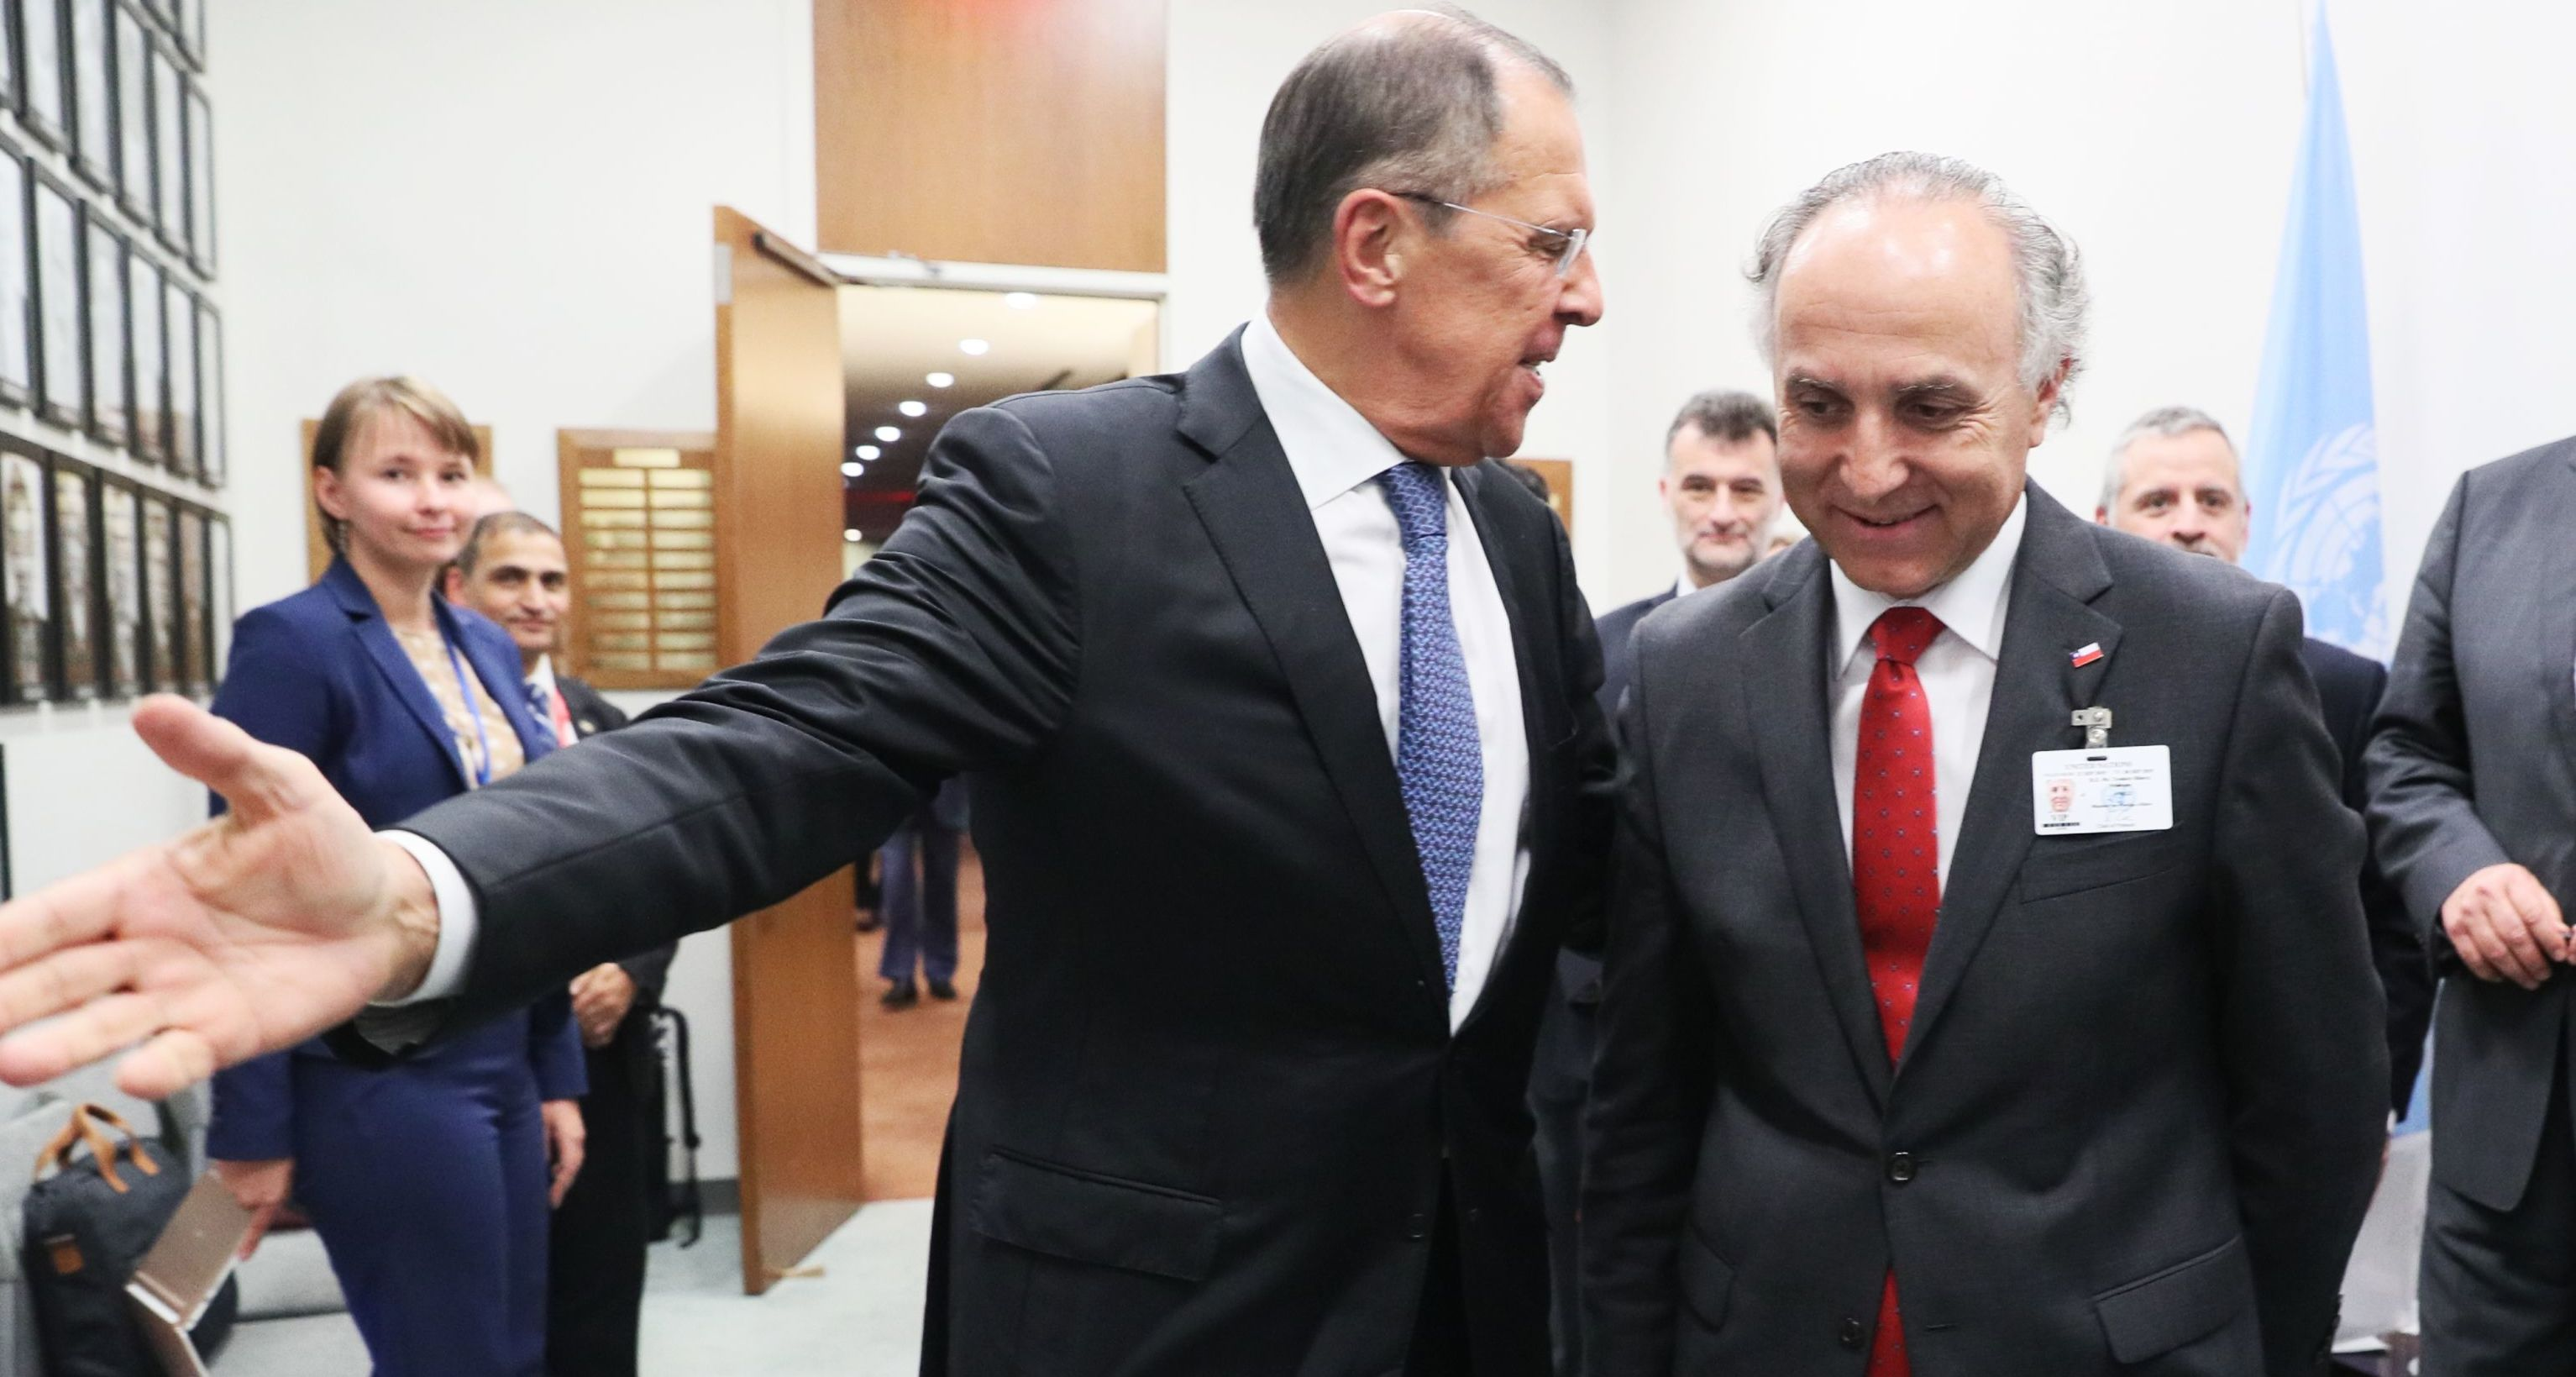 Russian Foreign Minister Sergey Lavrov and Chile's Foreign Minister Teodoro Ribera